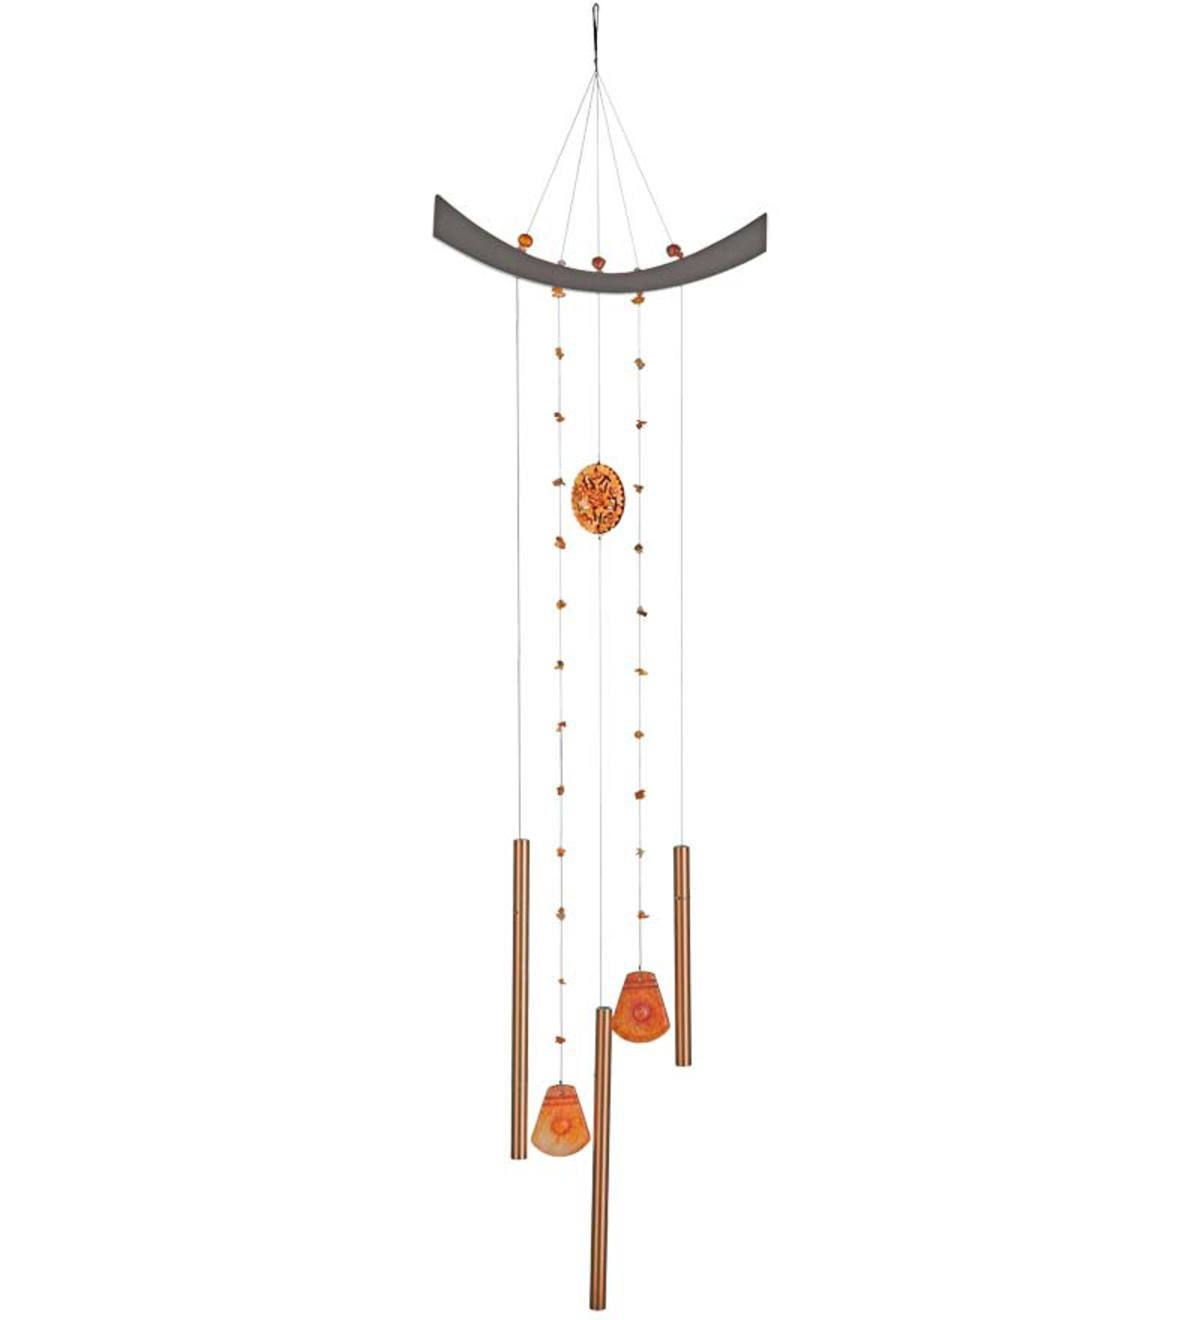 Feng Shui Energy Wind Chimes with Semiprecious Stone Accents - Jade